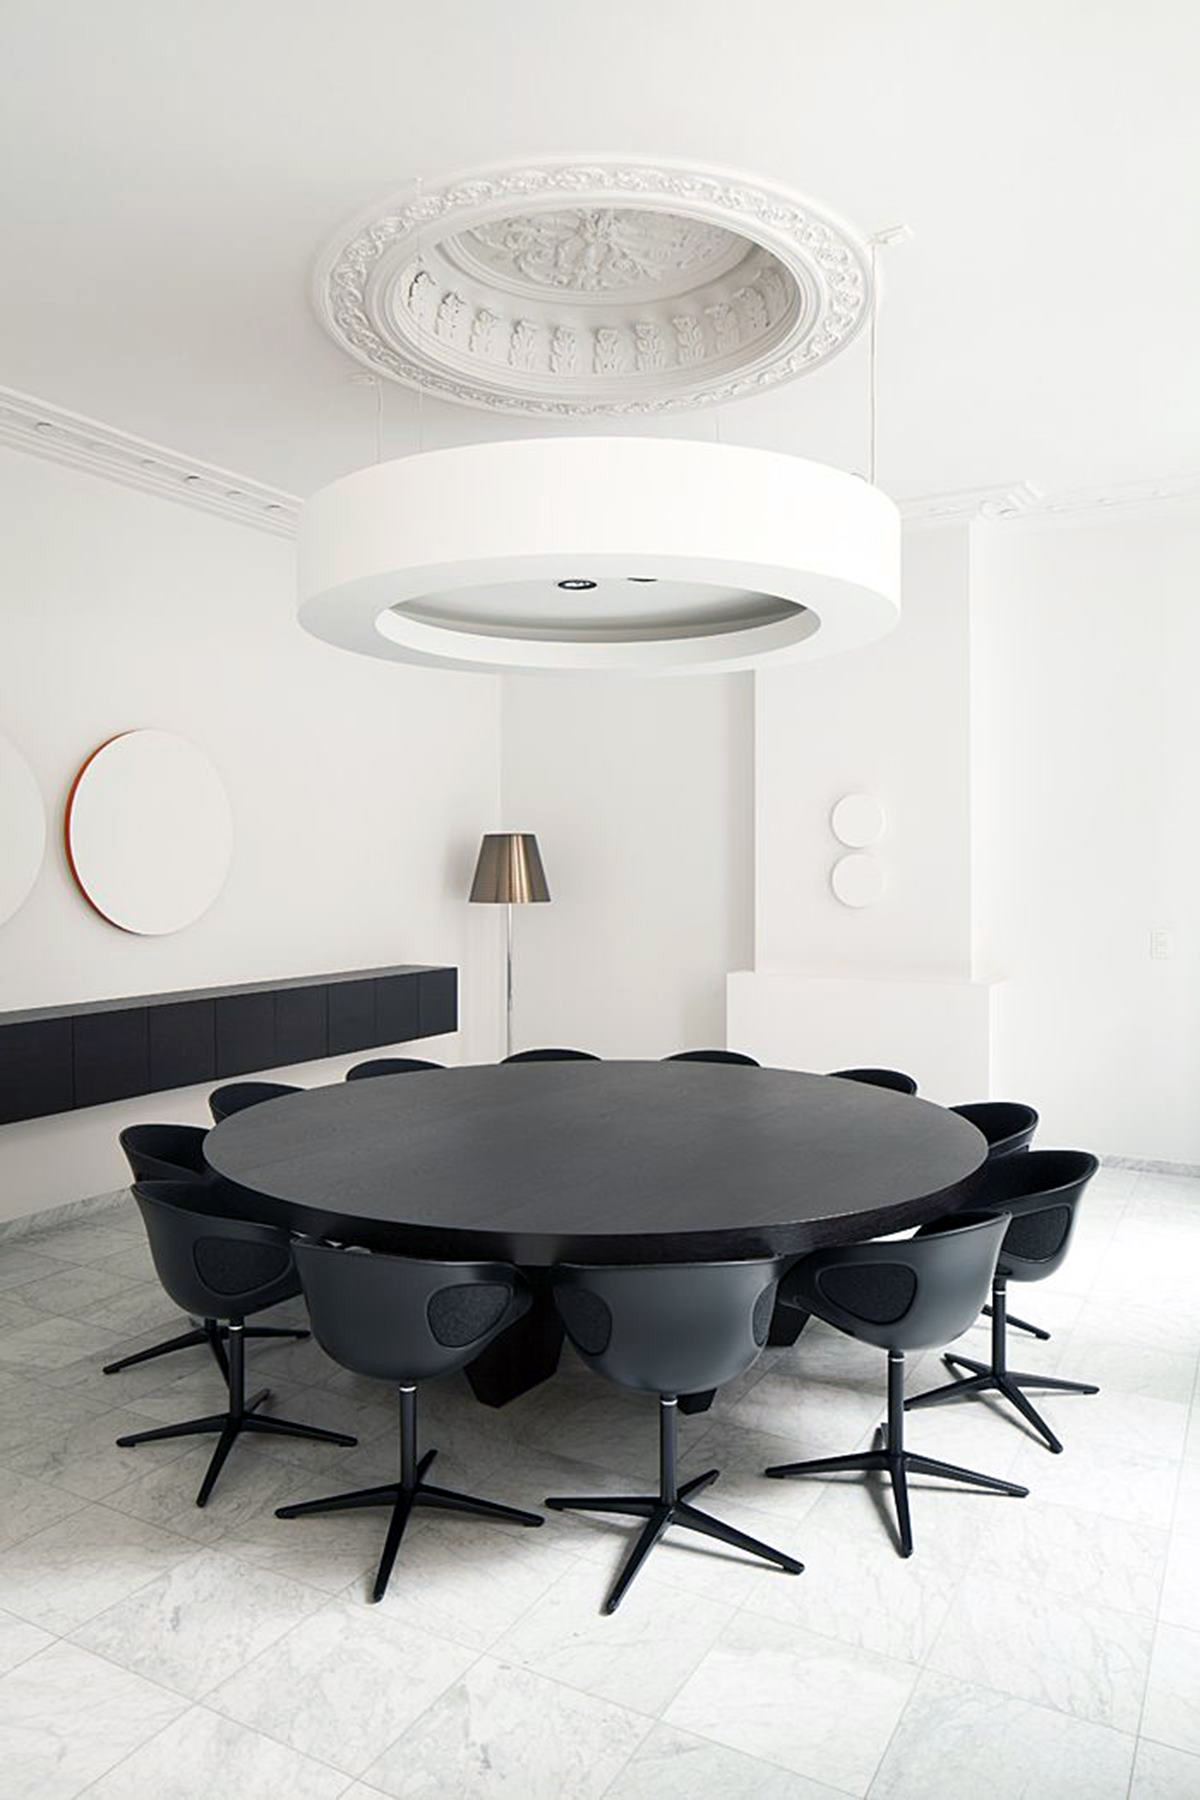 Conference Room Interior Design: Future-Now-Conference-Room.jpg